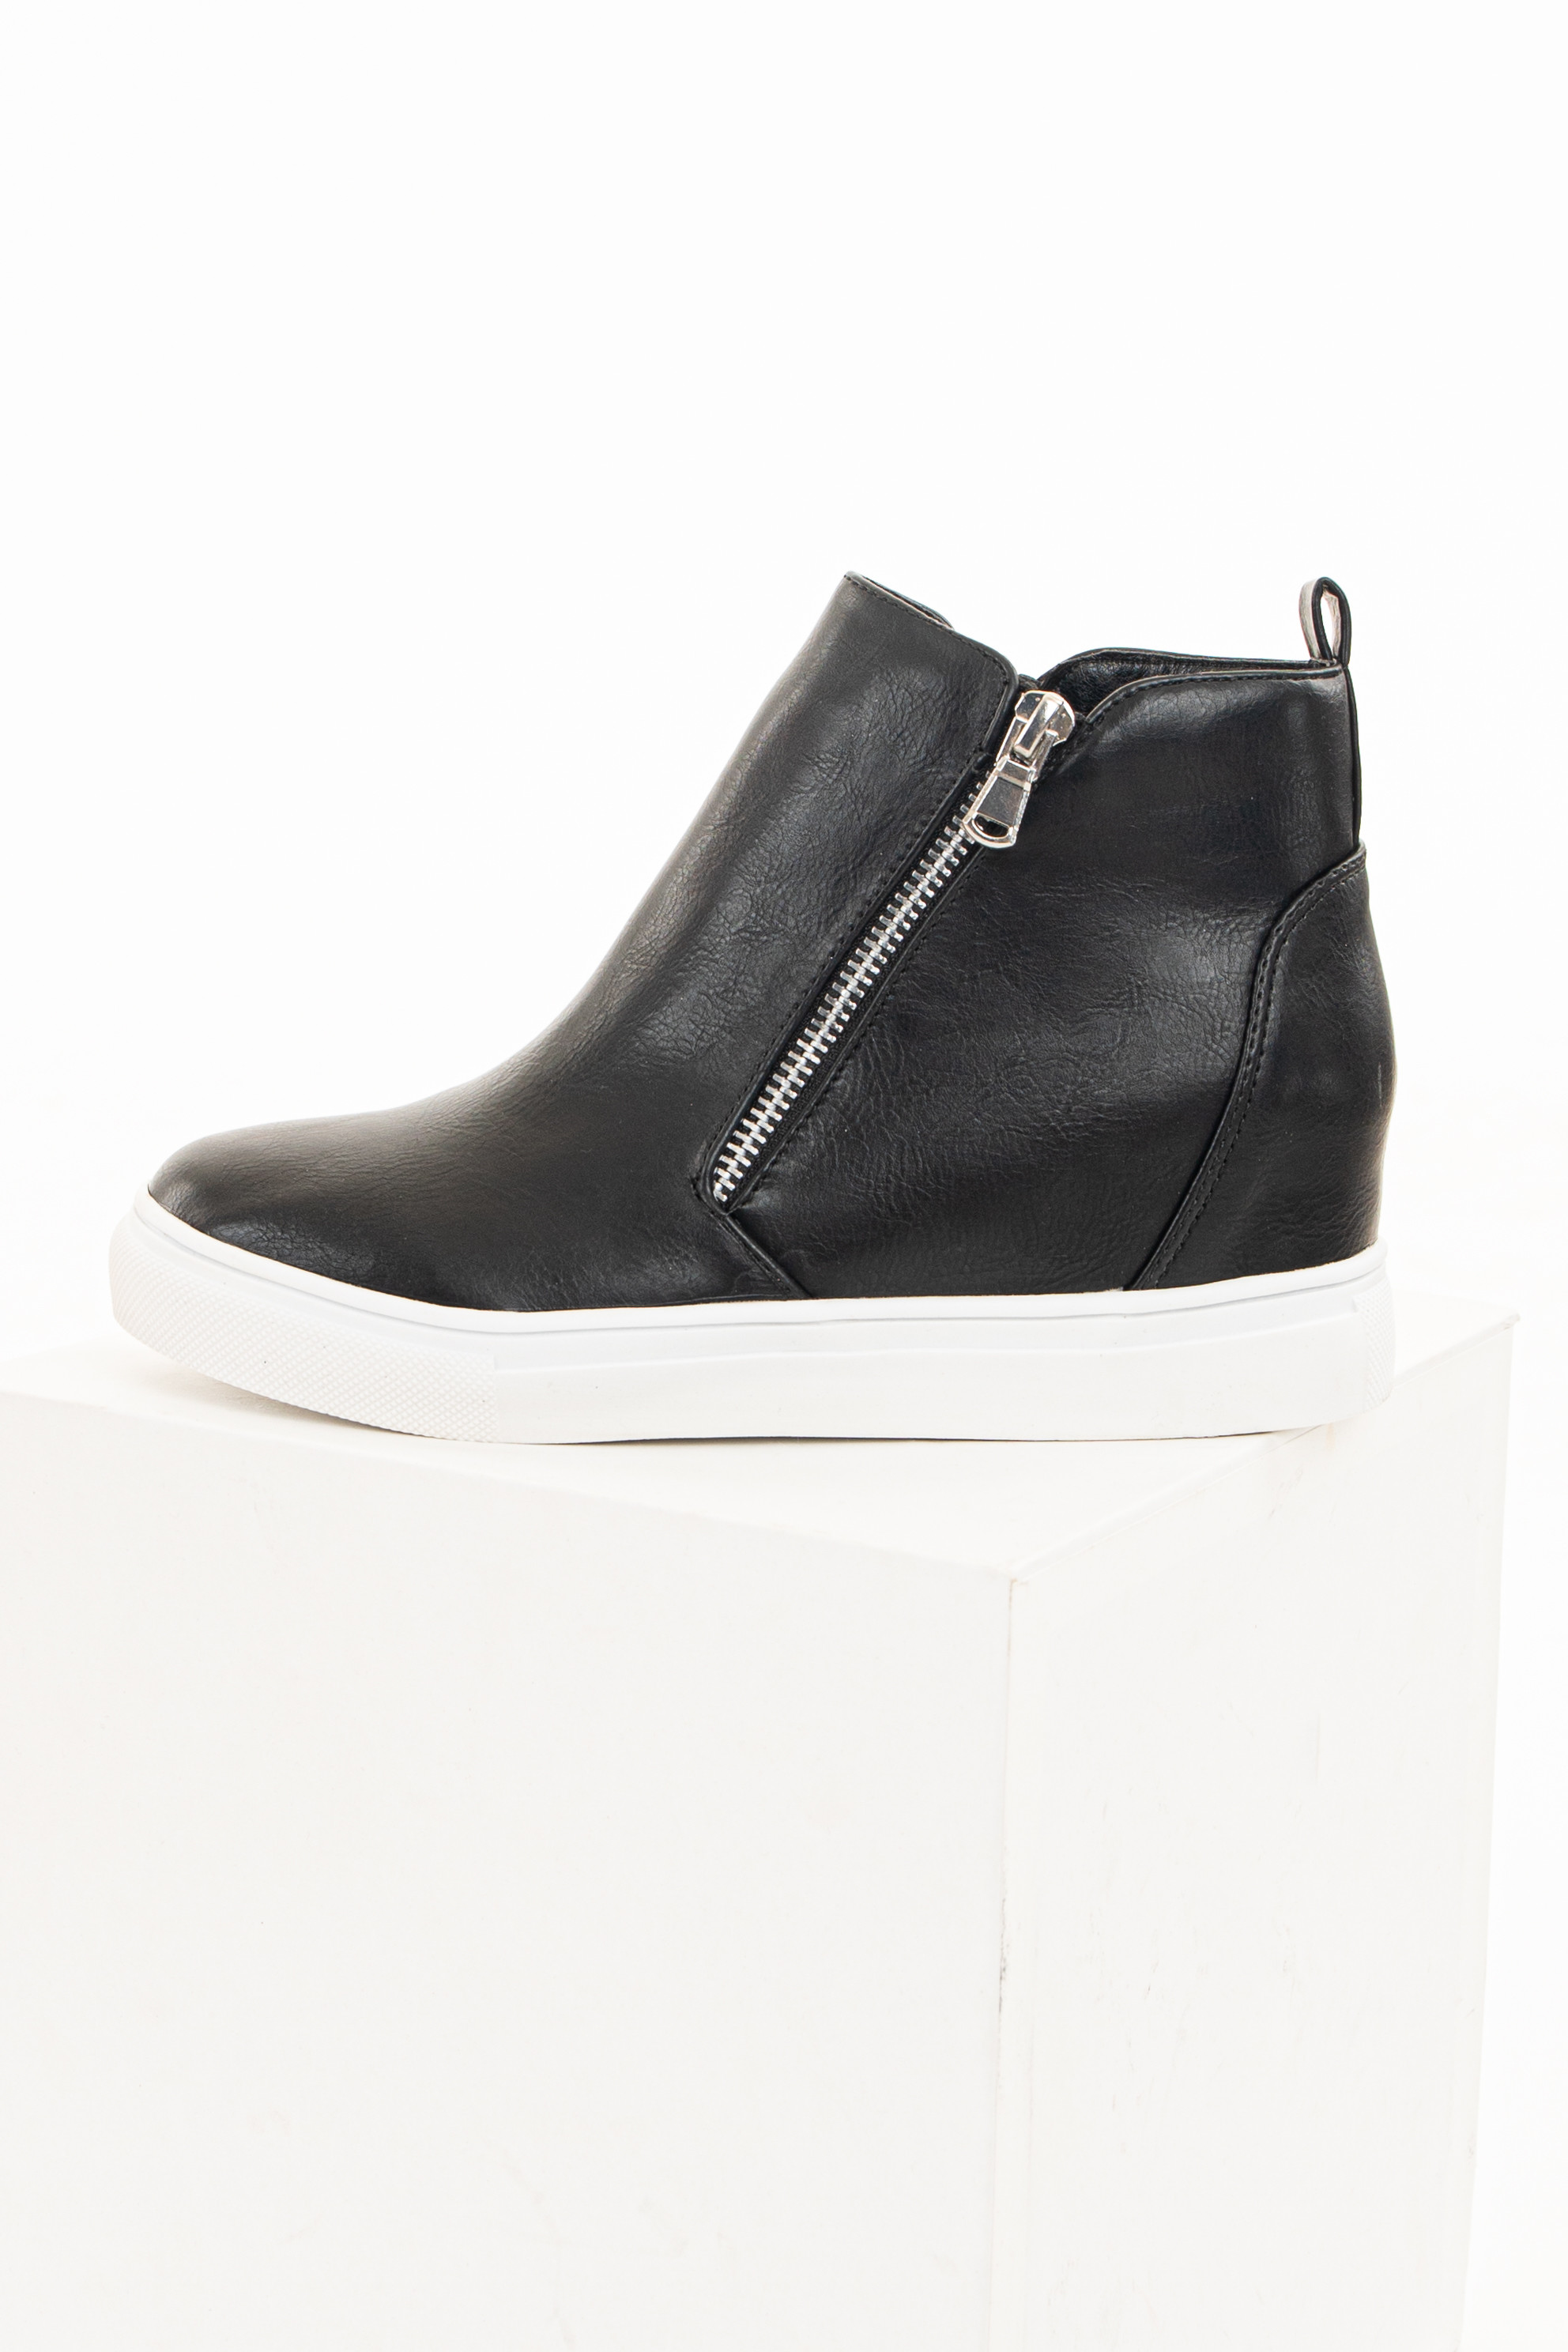 Matte Black Faux Leather Sneaker Wedges with Zipper Closure